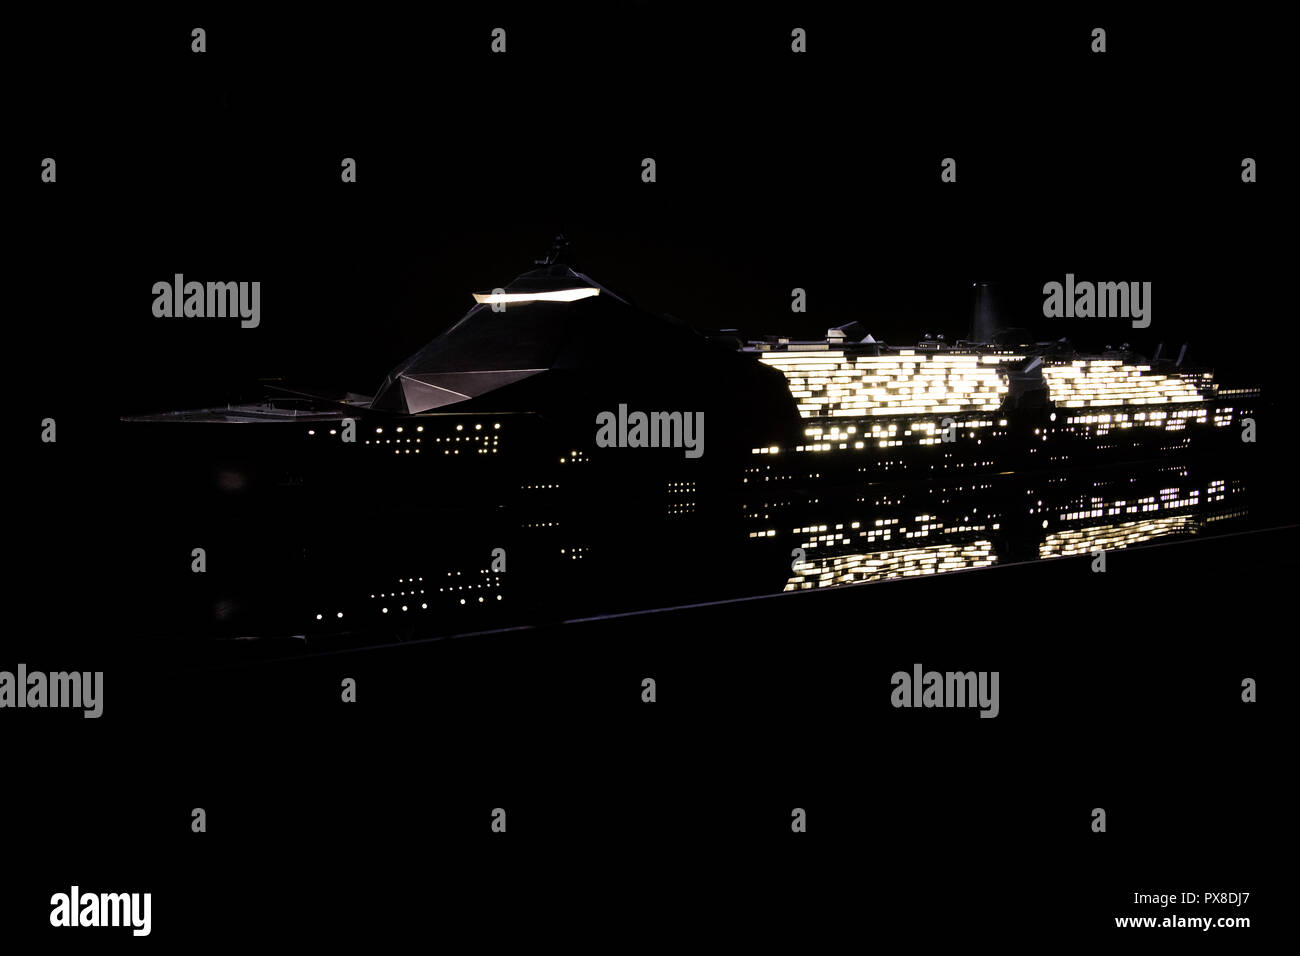 A model of the fictional cruise ship Sea of Tranquillity, by Belgian artist Hans Op de Beeck on display at the Dutch National Maritime Museum. - Stock Image